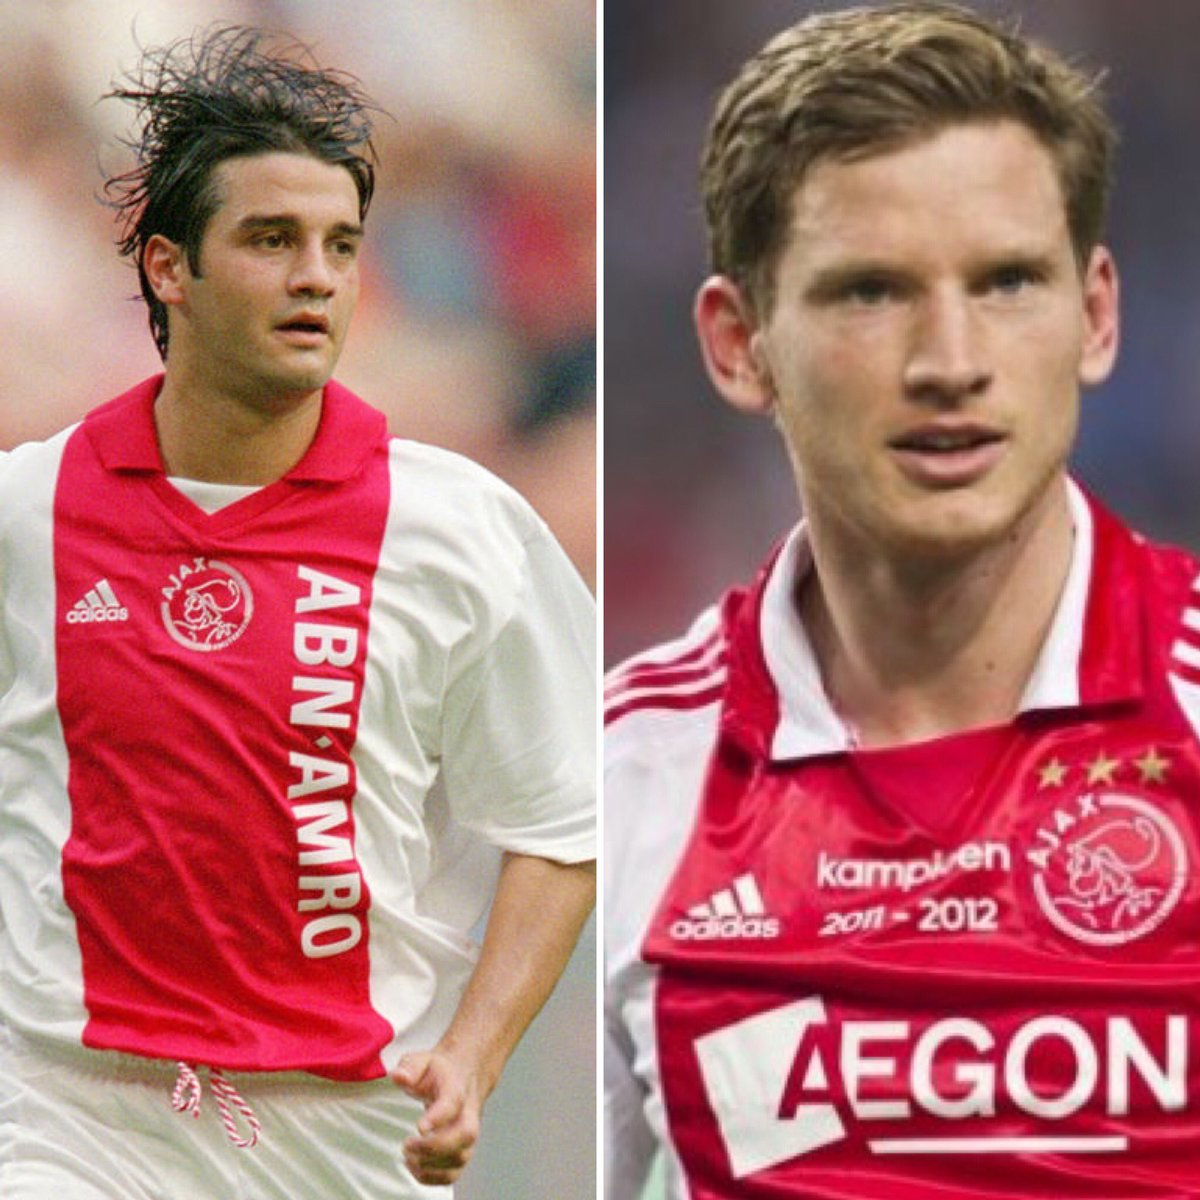 Let's do one more! Looking back (PART III): Who was the better player at Ajax? ...  #ajax #football #soccer #Italy #UnitedStatesofAmerica #Wales #Colombia #IvoryCoast #Cameroon #Egypt #Mexico #Morocco #Brazil #Japan #Croatia #Poland #Spain #Germany #Sweden #Belgium #Romaniapic.twitter.com/p6tFayAdmB